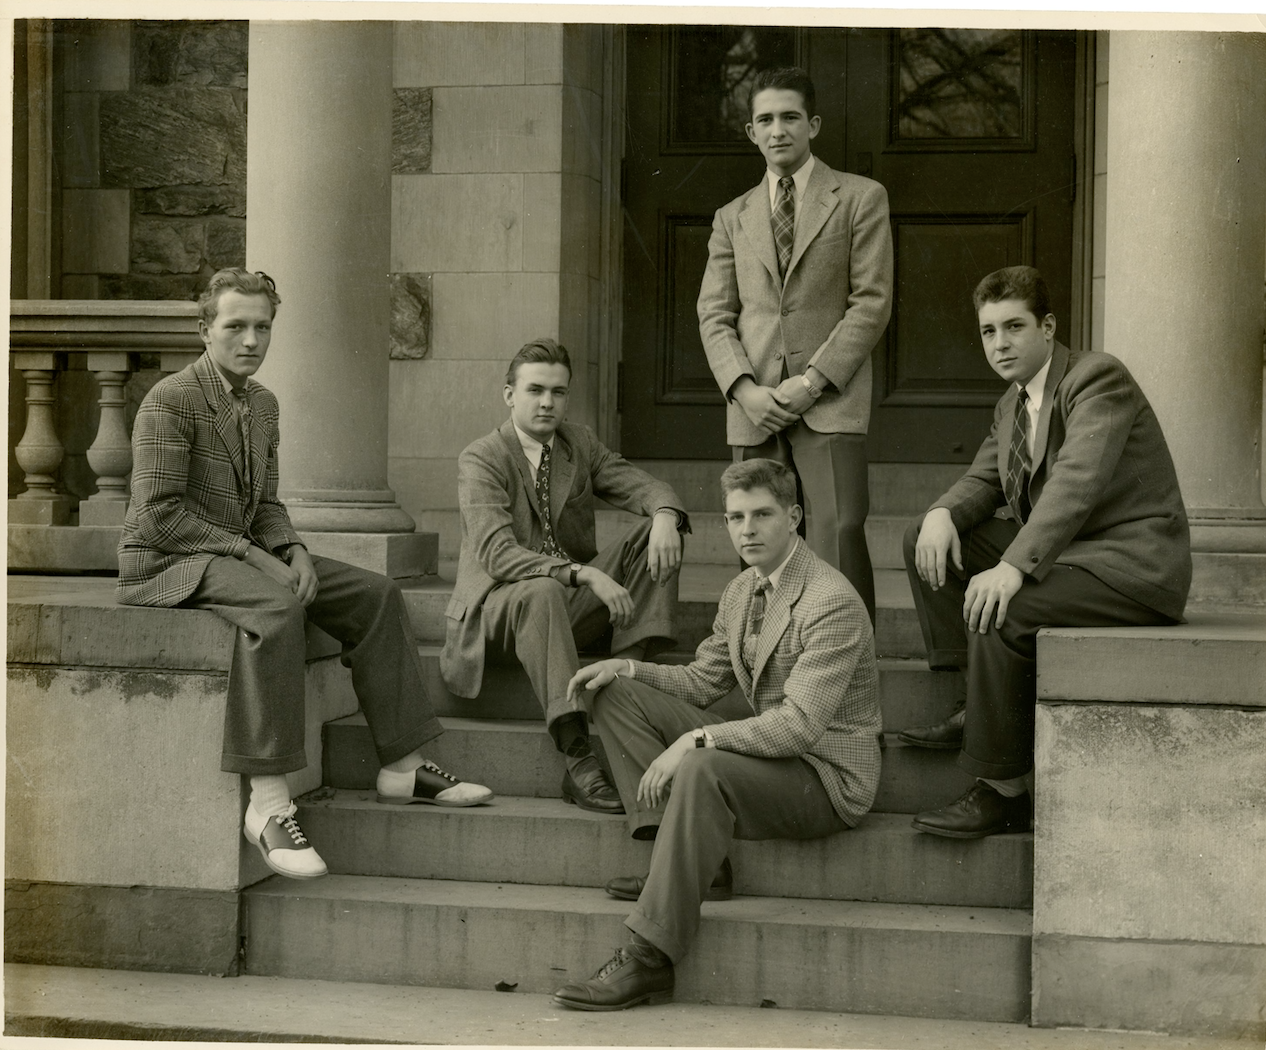 Hackley students dress to impress and pose in this blast from the past.